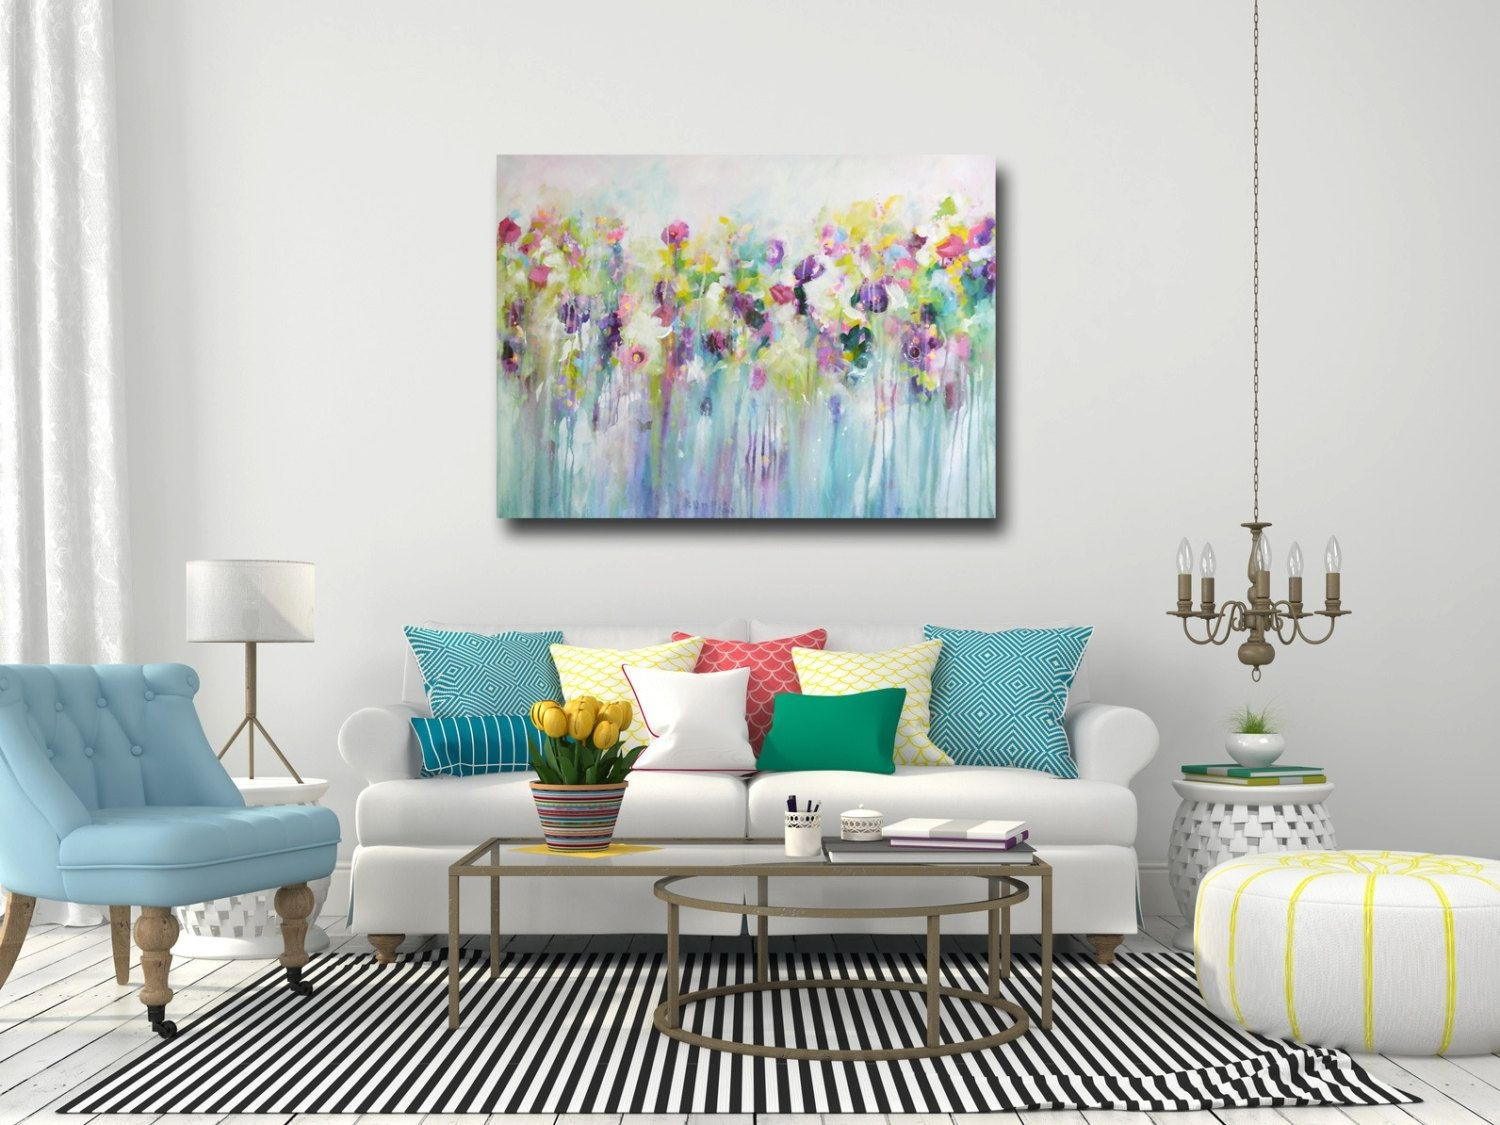 Large Wall Art, Canvas Art, Abstract Floral Canvas Print, Giclee Throughout 2017 Abstract Floral Canvas Wall Art (View 17 of 20)